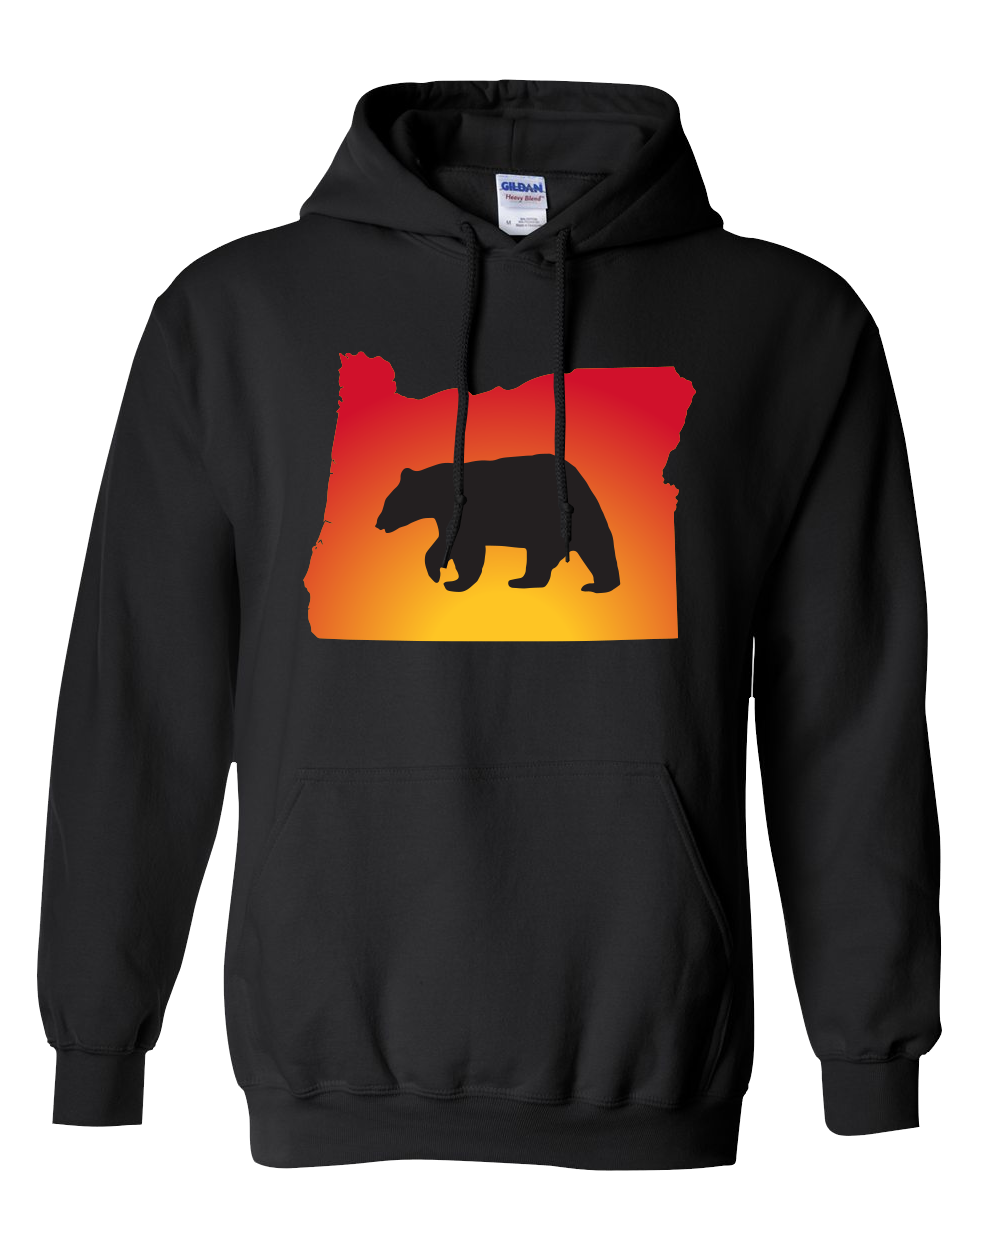 Pullover Hooded Sweatshirt Oregon Black Black Bear Vibrant Design High Quality Tight Knit Ring Spun Low Maintenance Cotton Printed With The Newest Available Color Transfer Technology